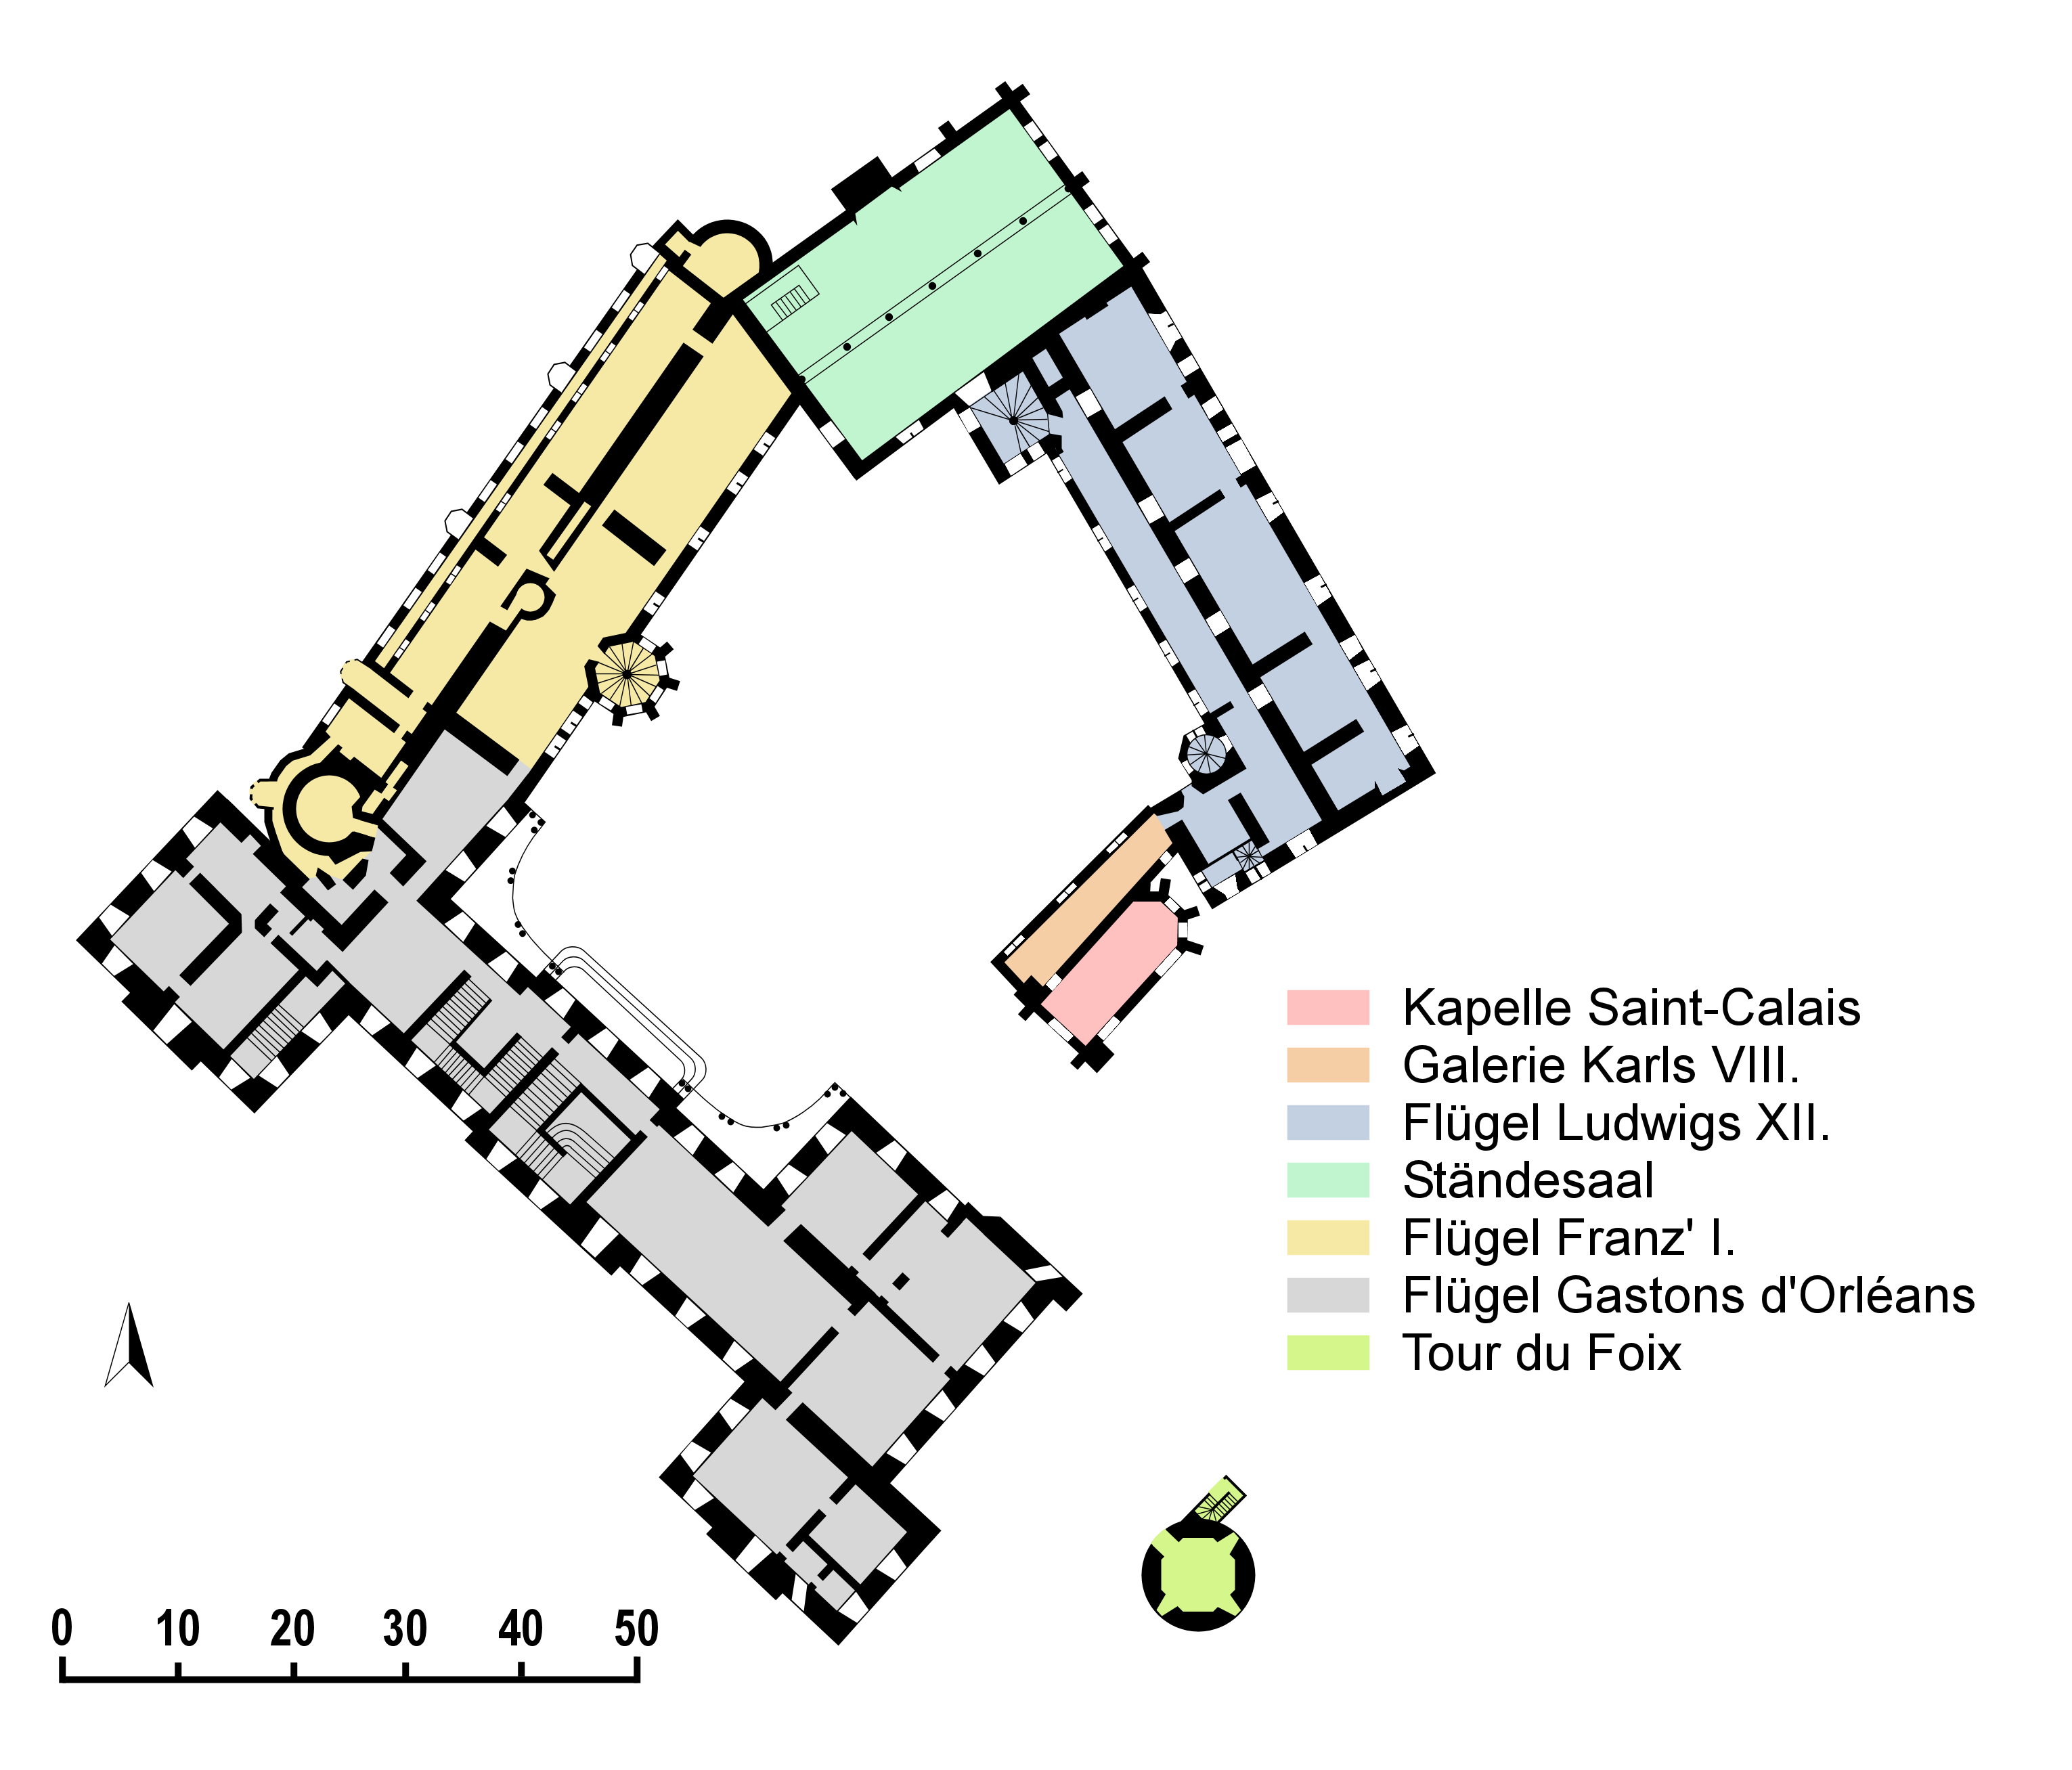 File:GrundrissSchlossBlois.png - Wikimedia Commons